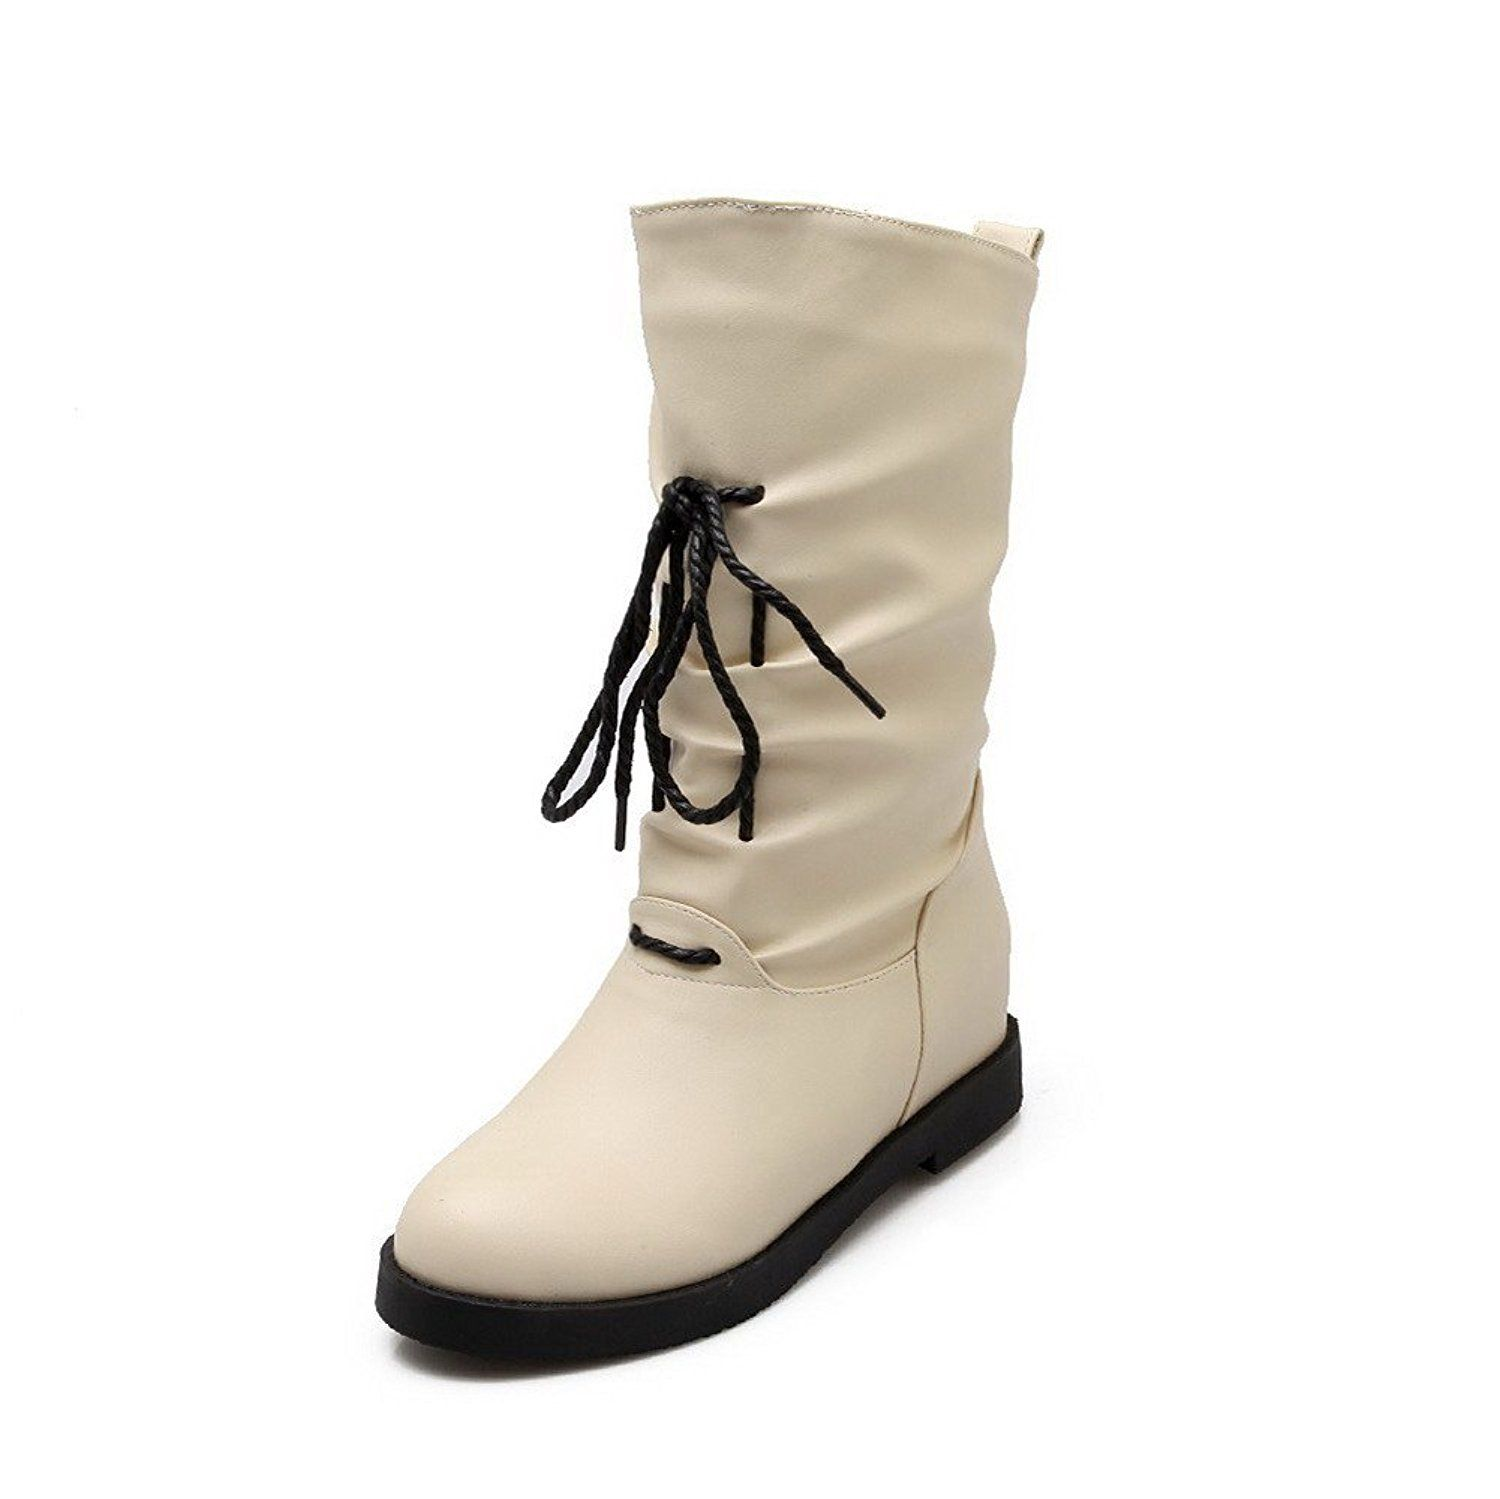 Women's High-Heels Solid Round Closed Toe Soft Material Pull-on Boots